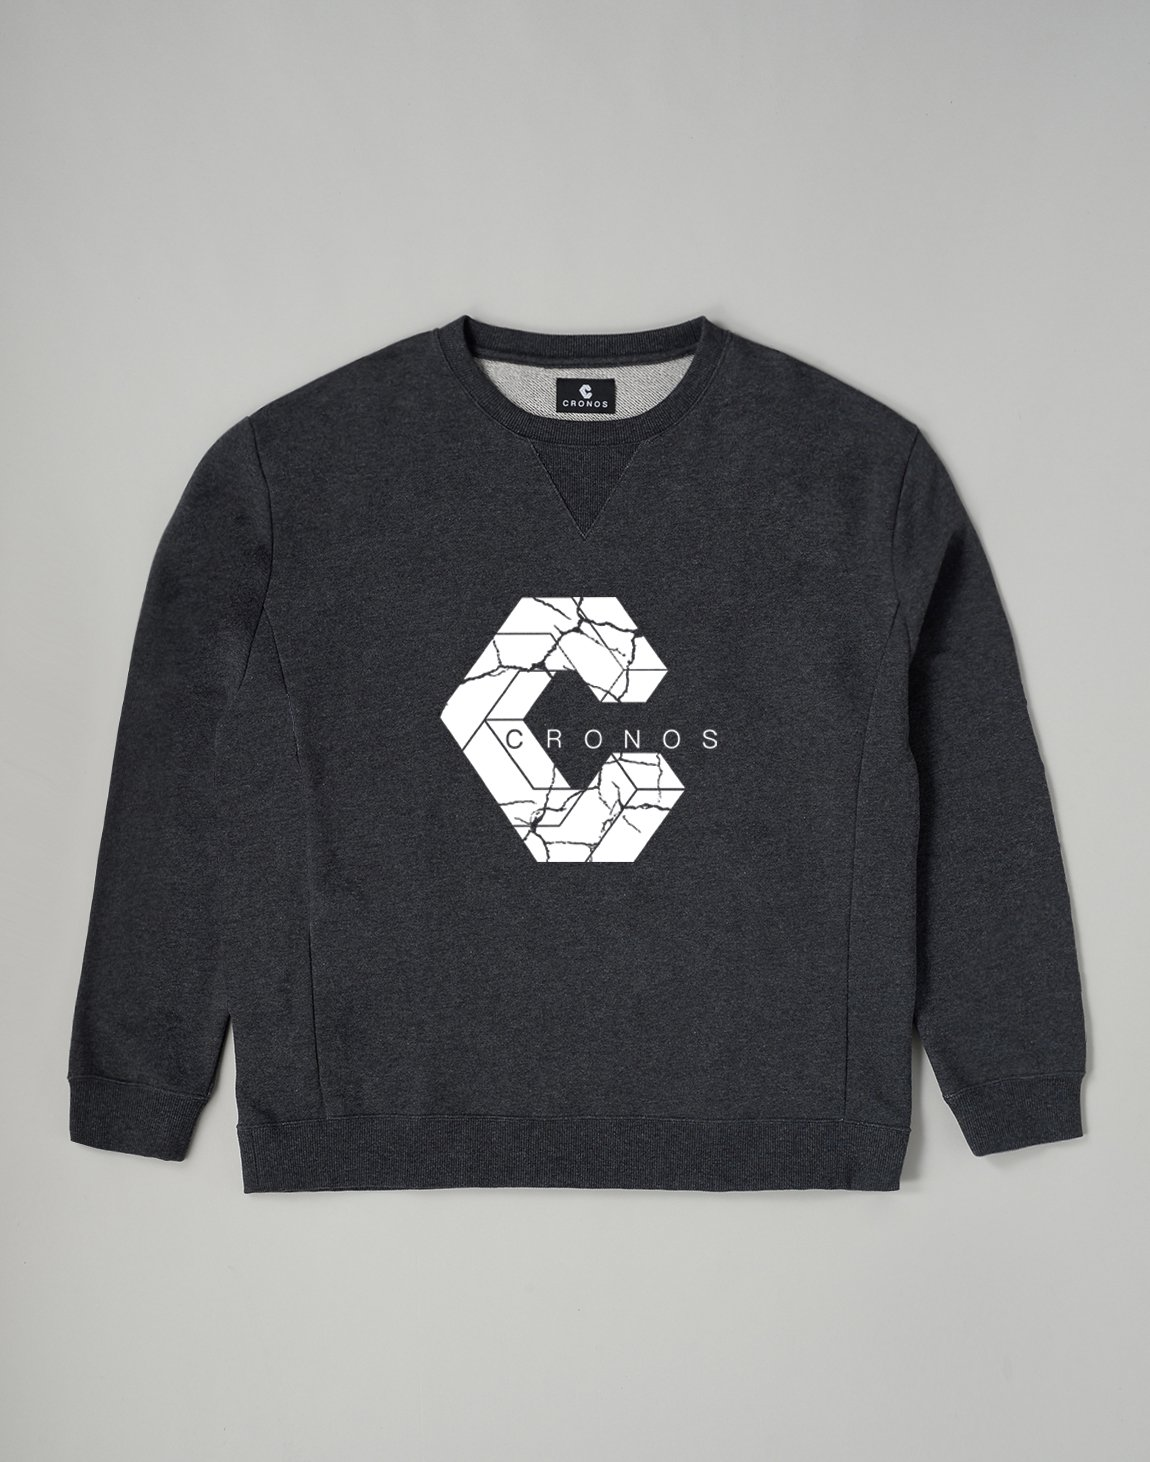 <img class='new_mark_img1' src='https://img.shop-pro.jp/img/new/icons1.gif' style='border:none;display:inline;margin:0px;padding:0px;width:auto;' />CRONOS SIGNATURE LOGO SWEATSHIRT【C.GRAY】